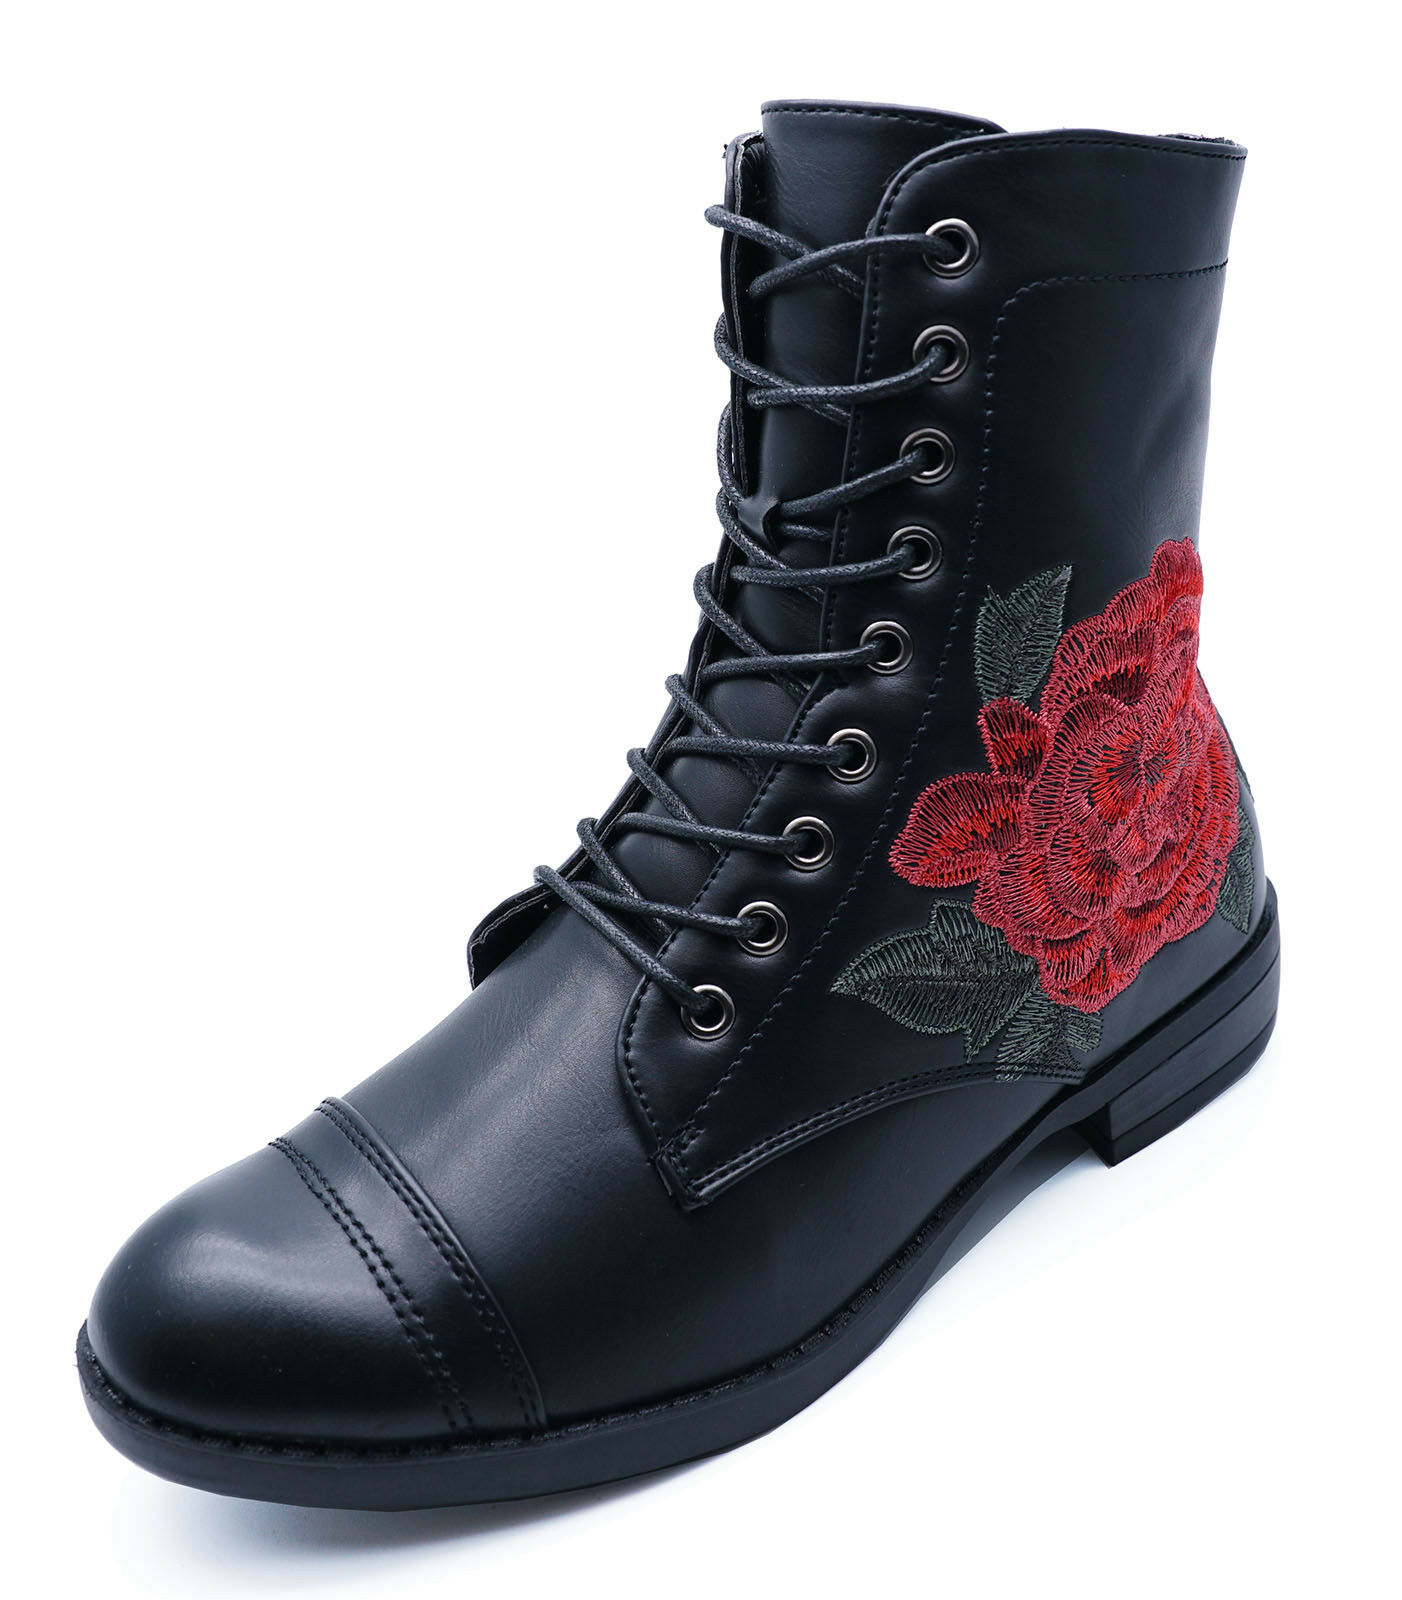 WOMENS BLACK LACE-UP ANKLE FLAT BIKER COMBAT CASUAL MILITARY BOOTS SHOES UK 3-9